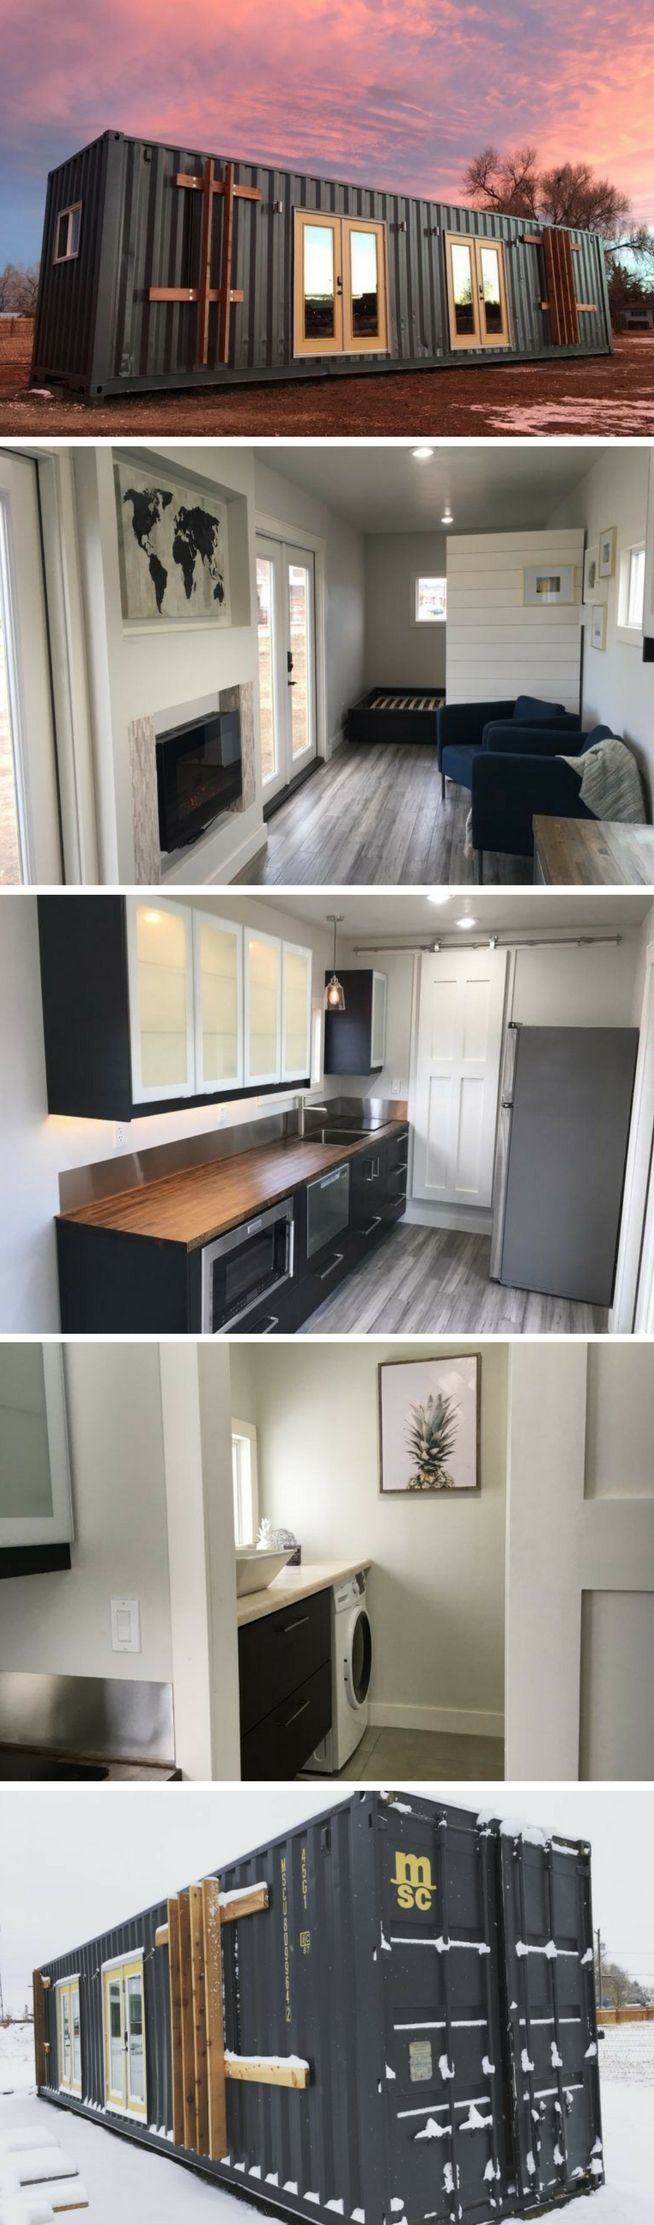 Best Kitchen Gallery: The Intellectual Tiny Container Home Tiny But Spacious Home of Grain Storage Containers Home  on rachelxblog.com